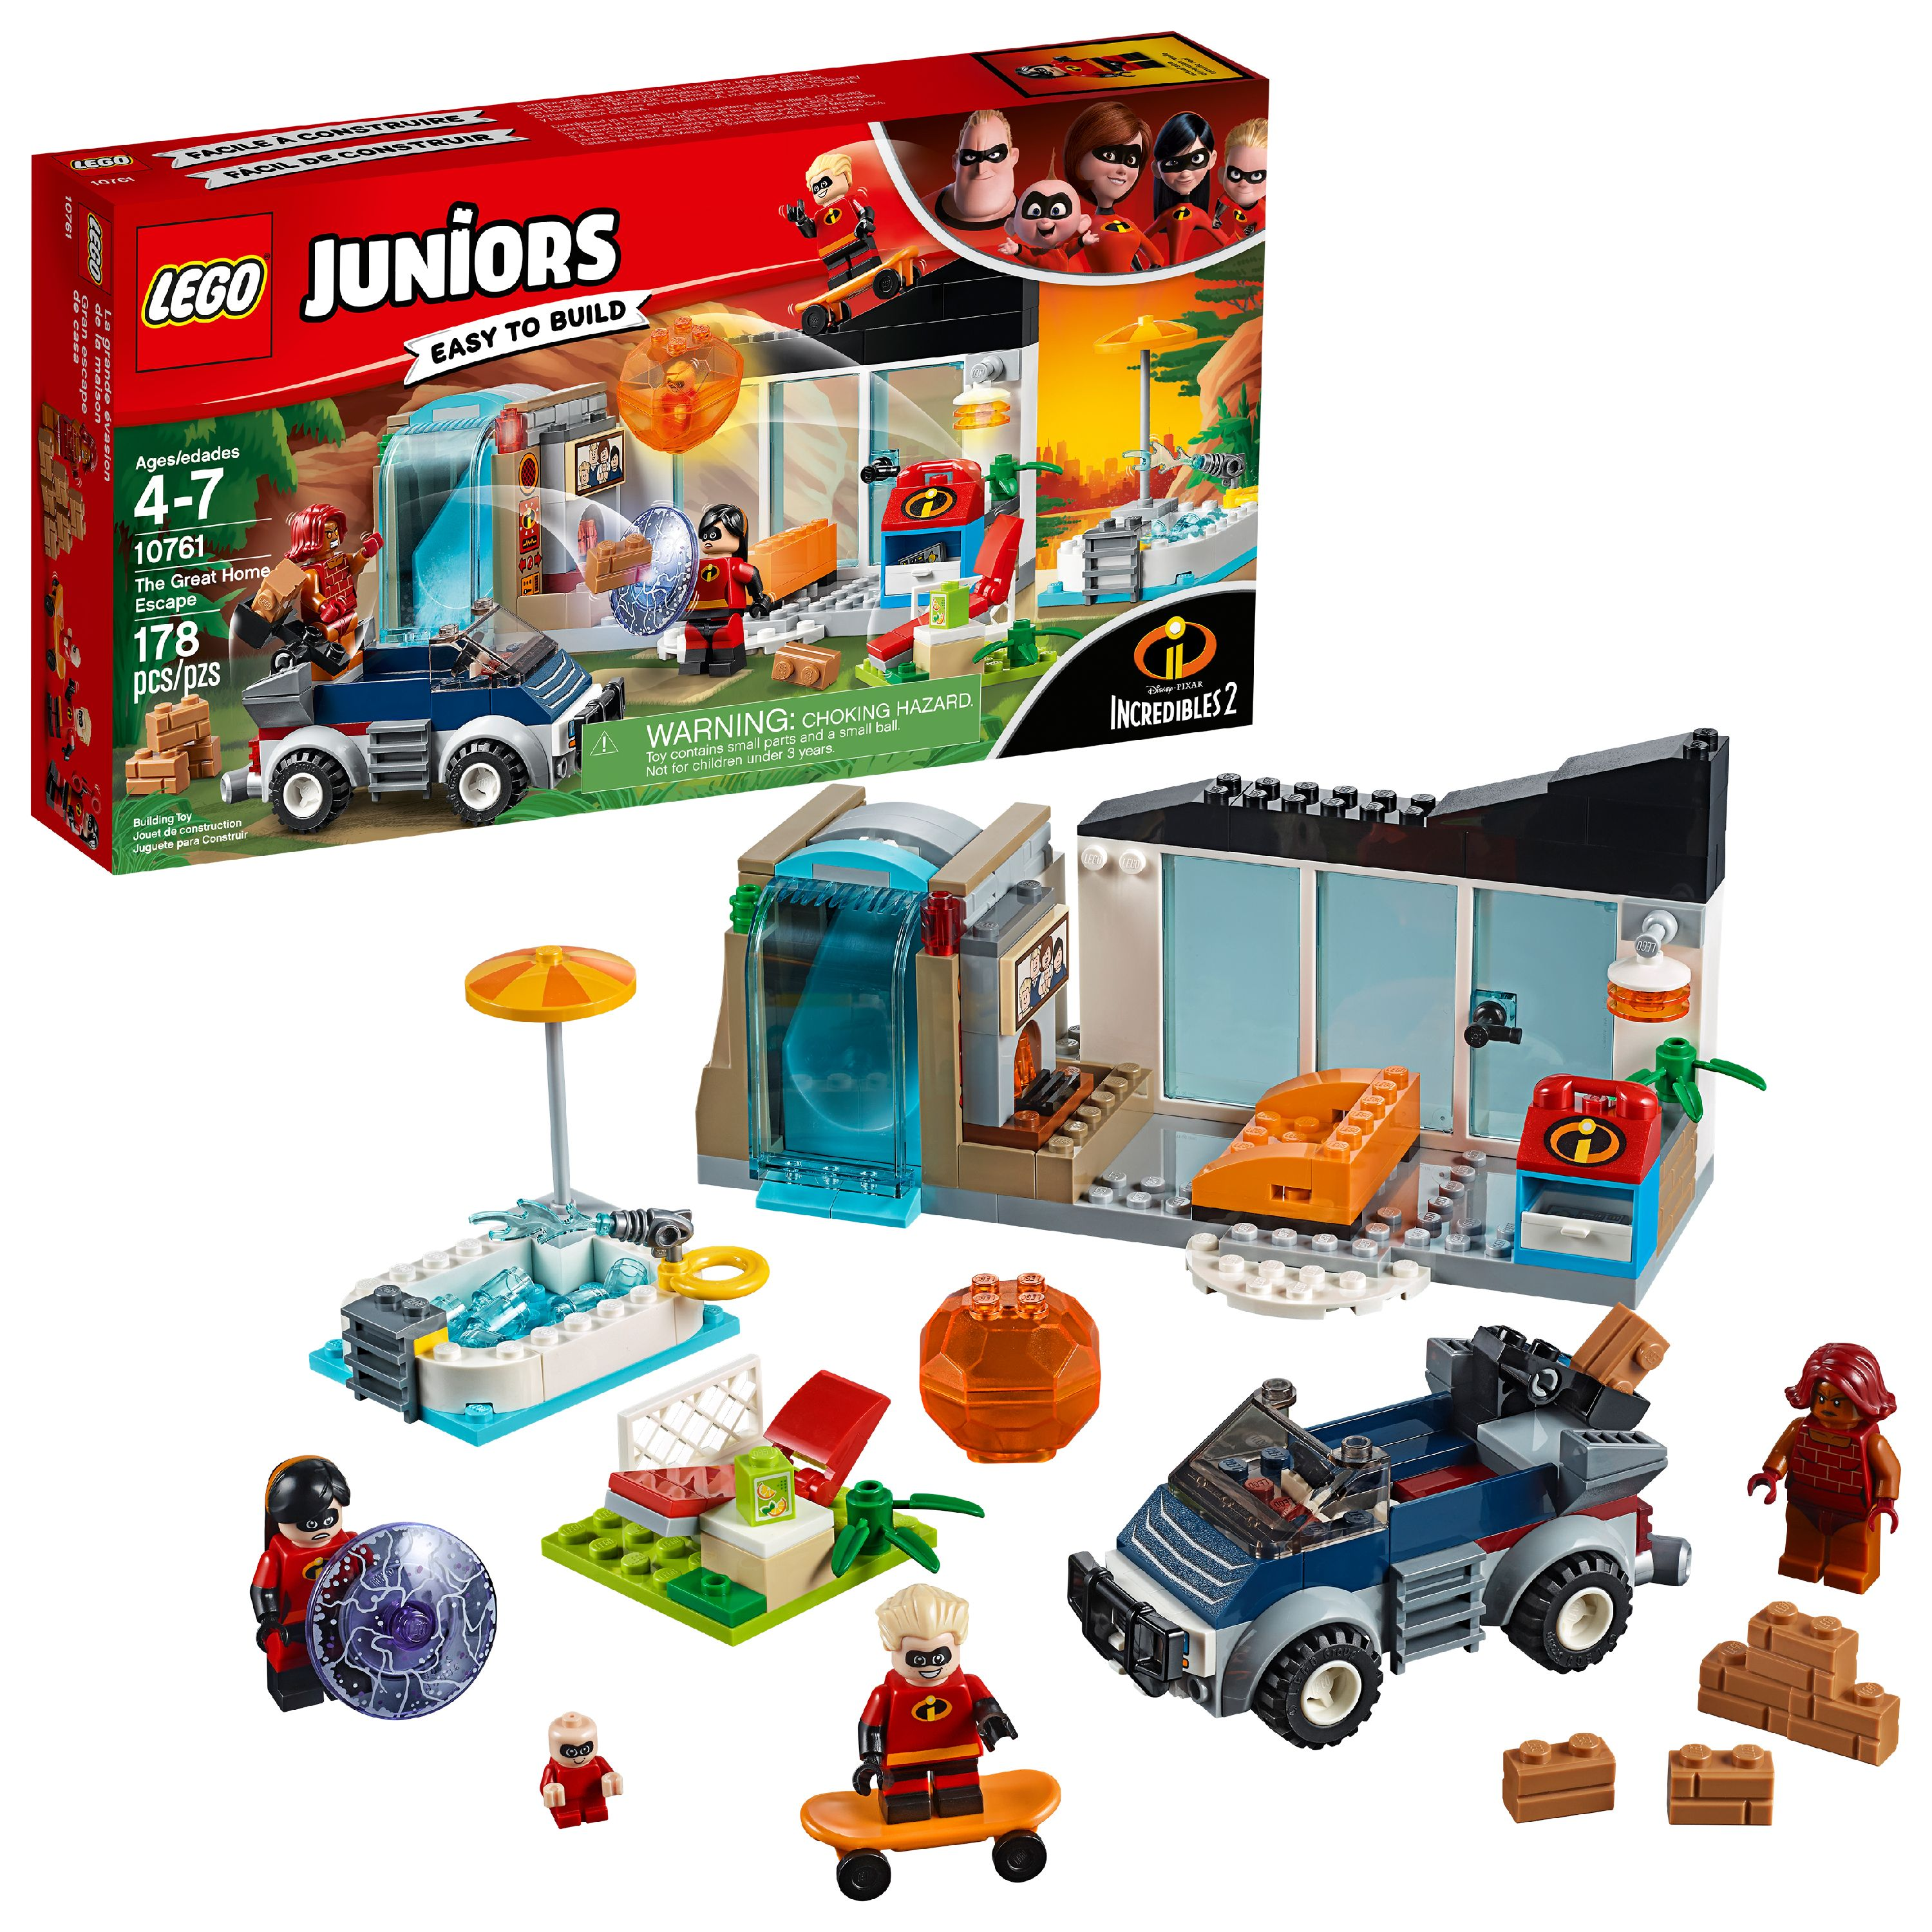 LEGO Juniors Incredibles 2 The Great Home Escape 10761 (178 Pieces)